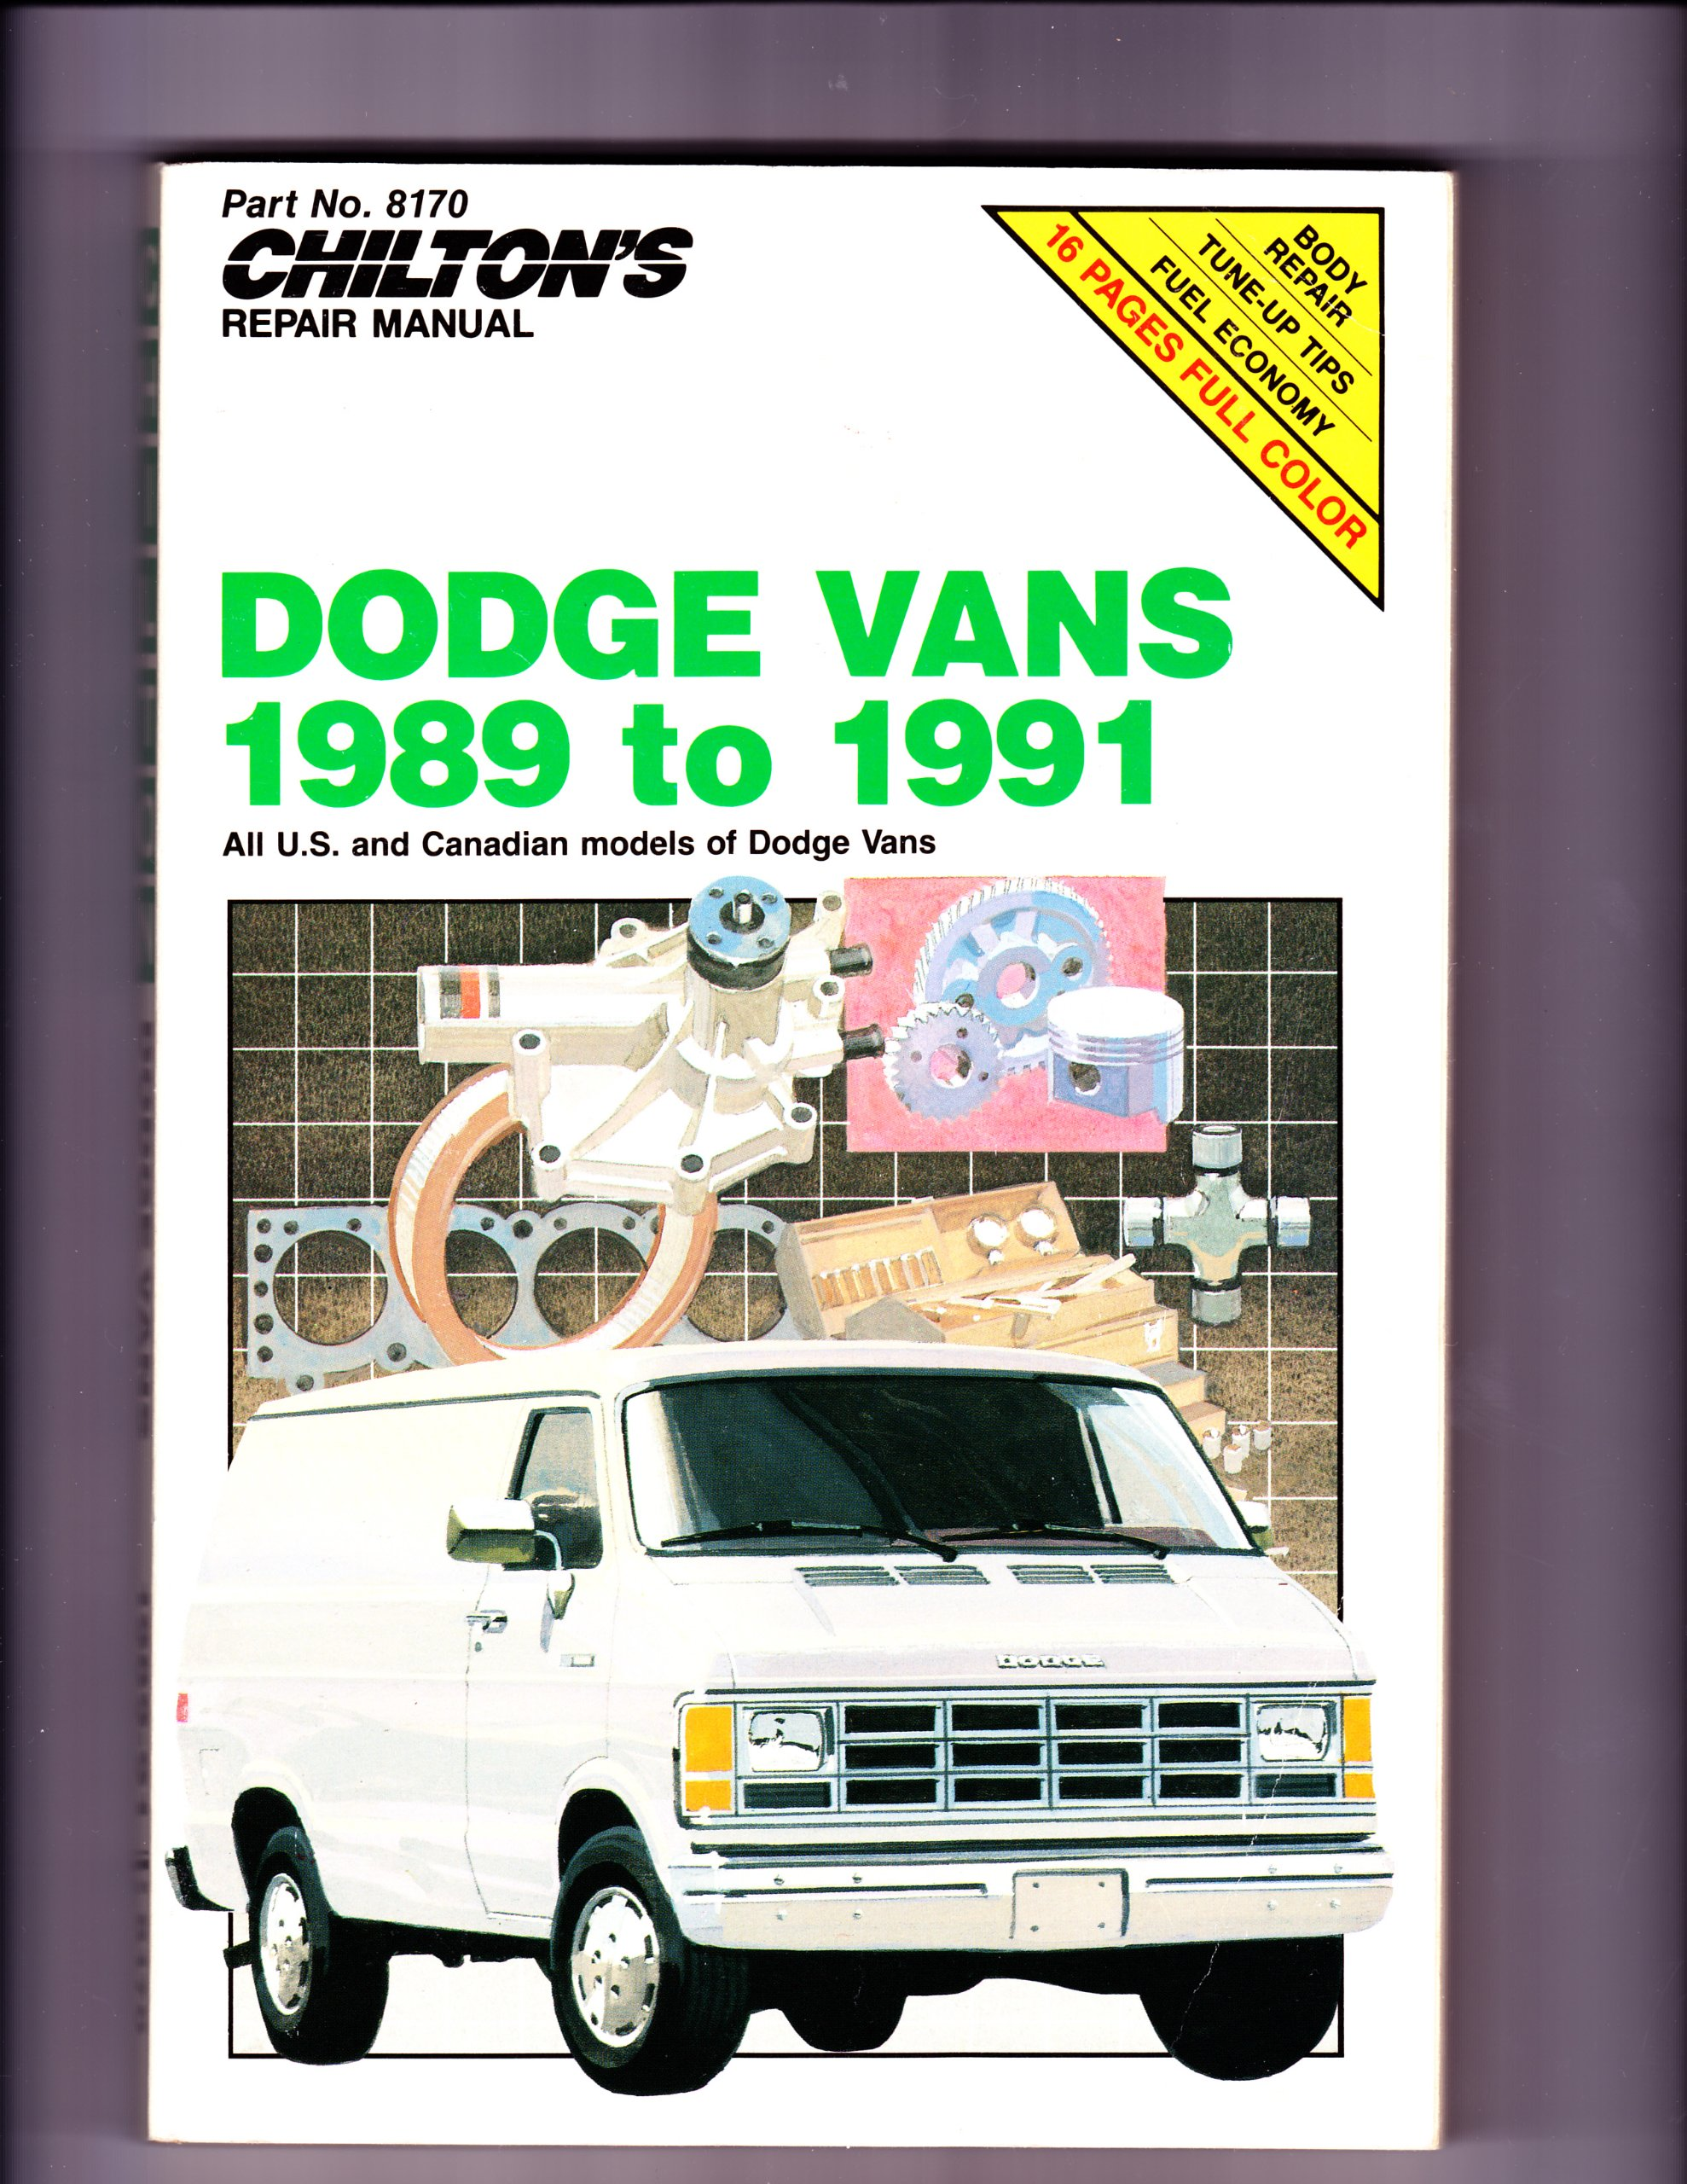 Chilton's Repair Manual: Dodge Vans 1989-91 : Covers All U.S. and Canadian  Models of Dodge Vans: Chilton Book Company: 9780801981708: Amazon.com: Books